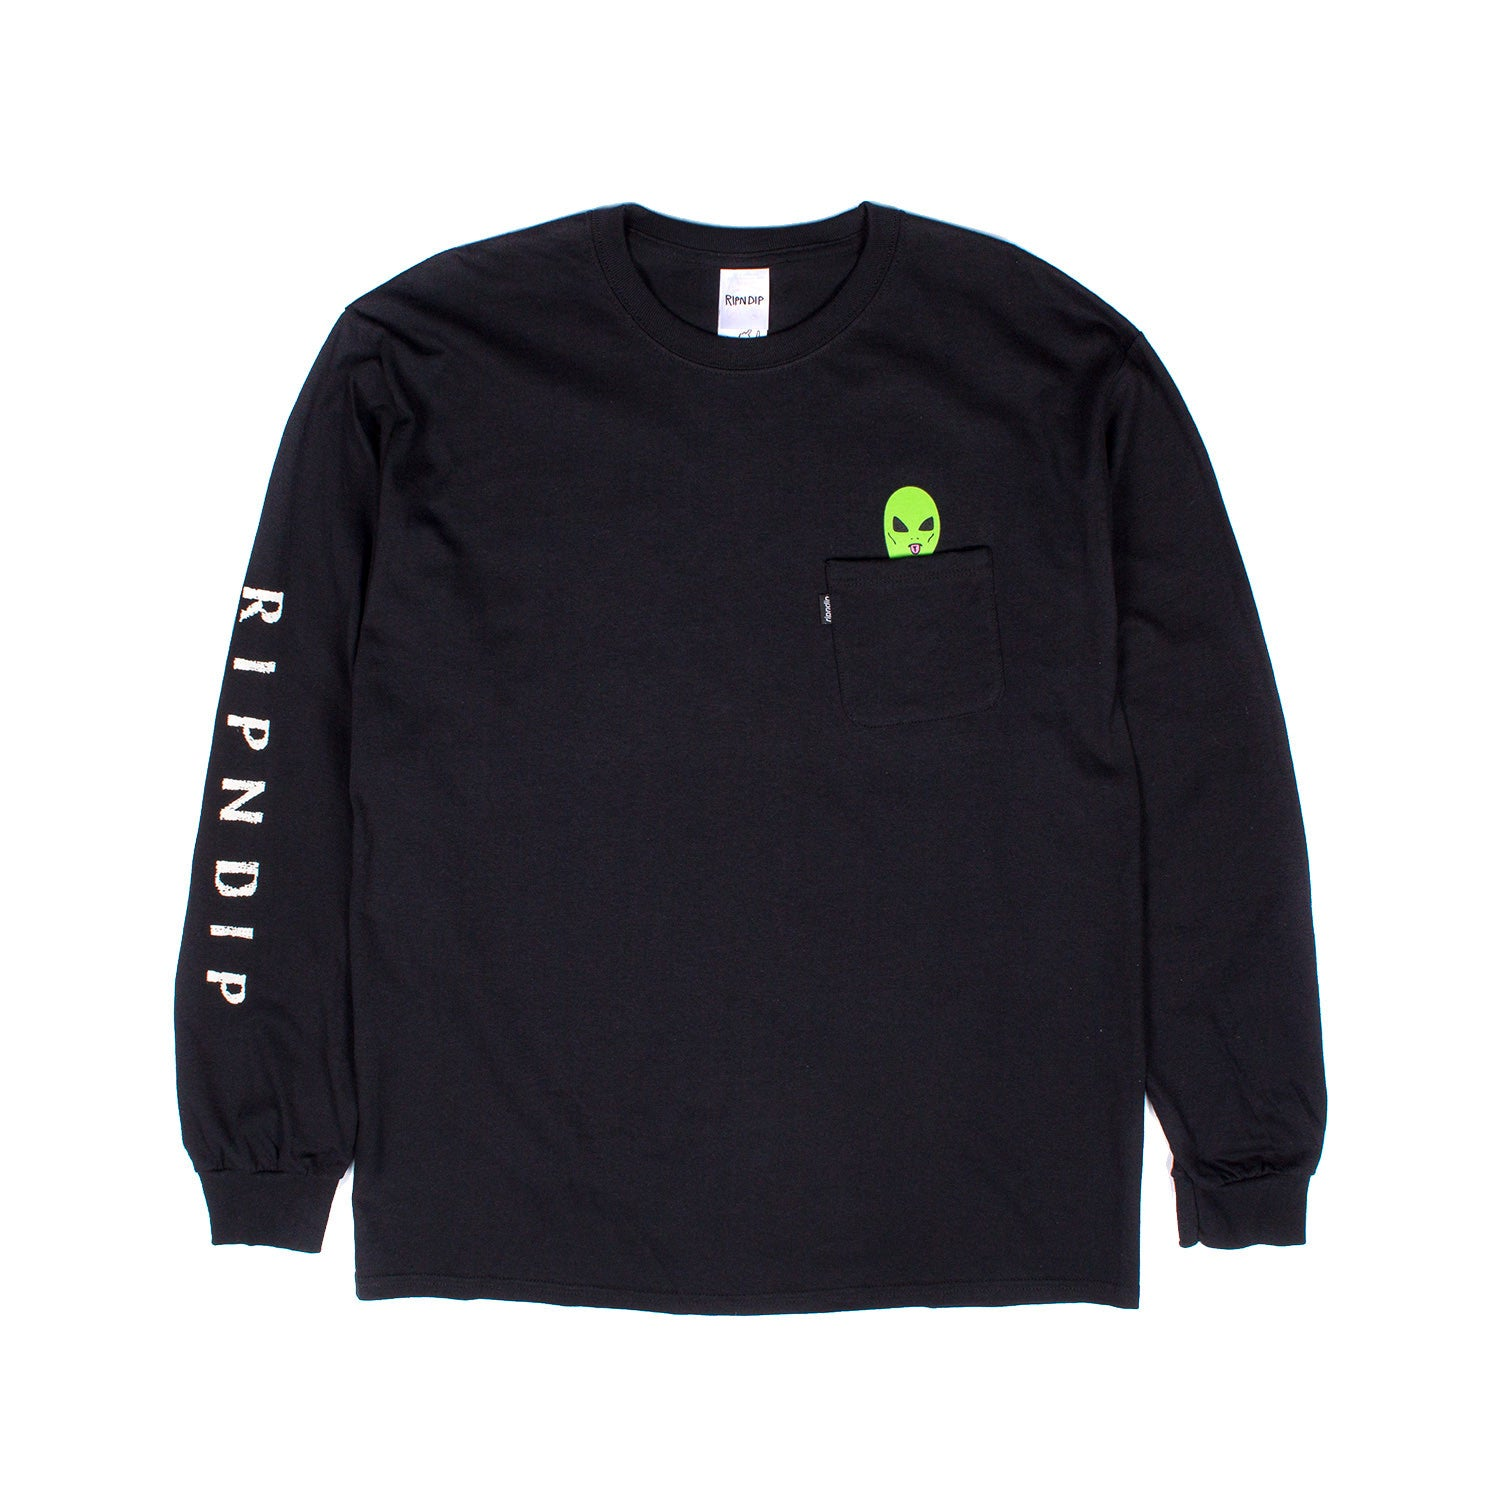 Lord Alien L/S (Black)